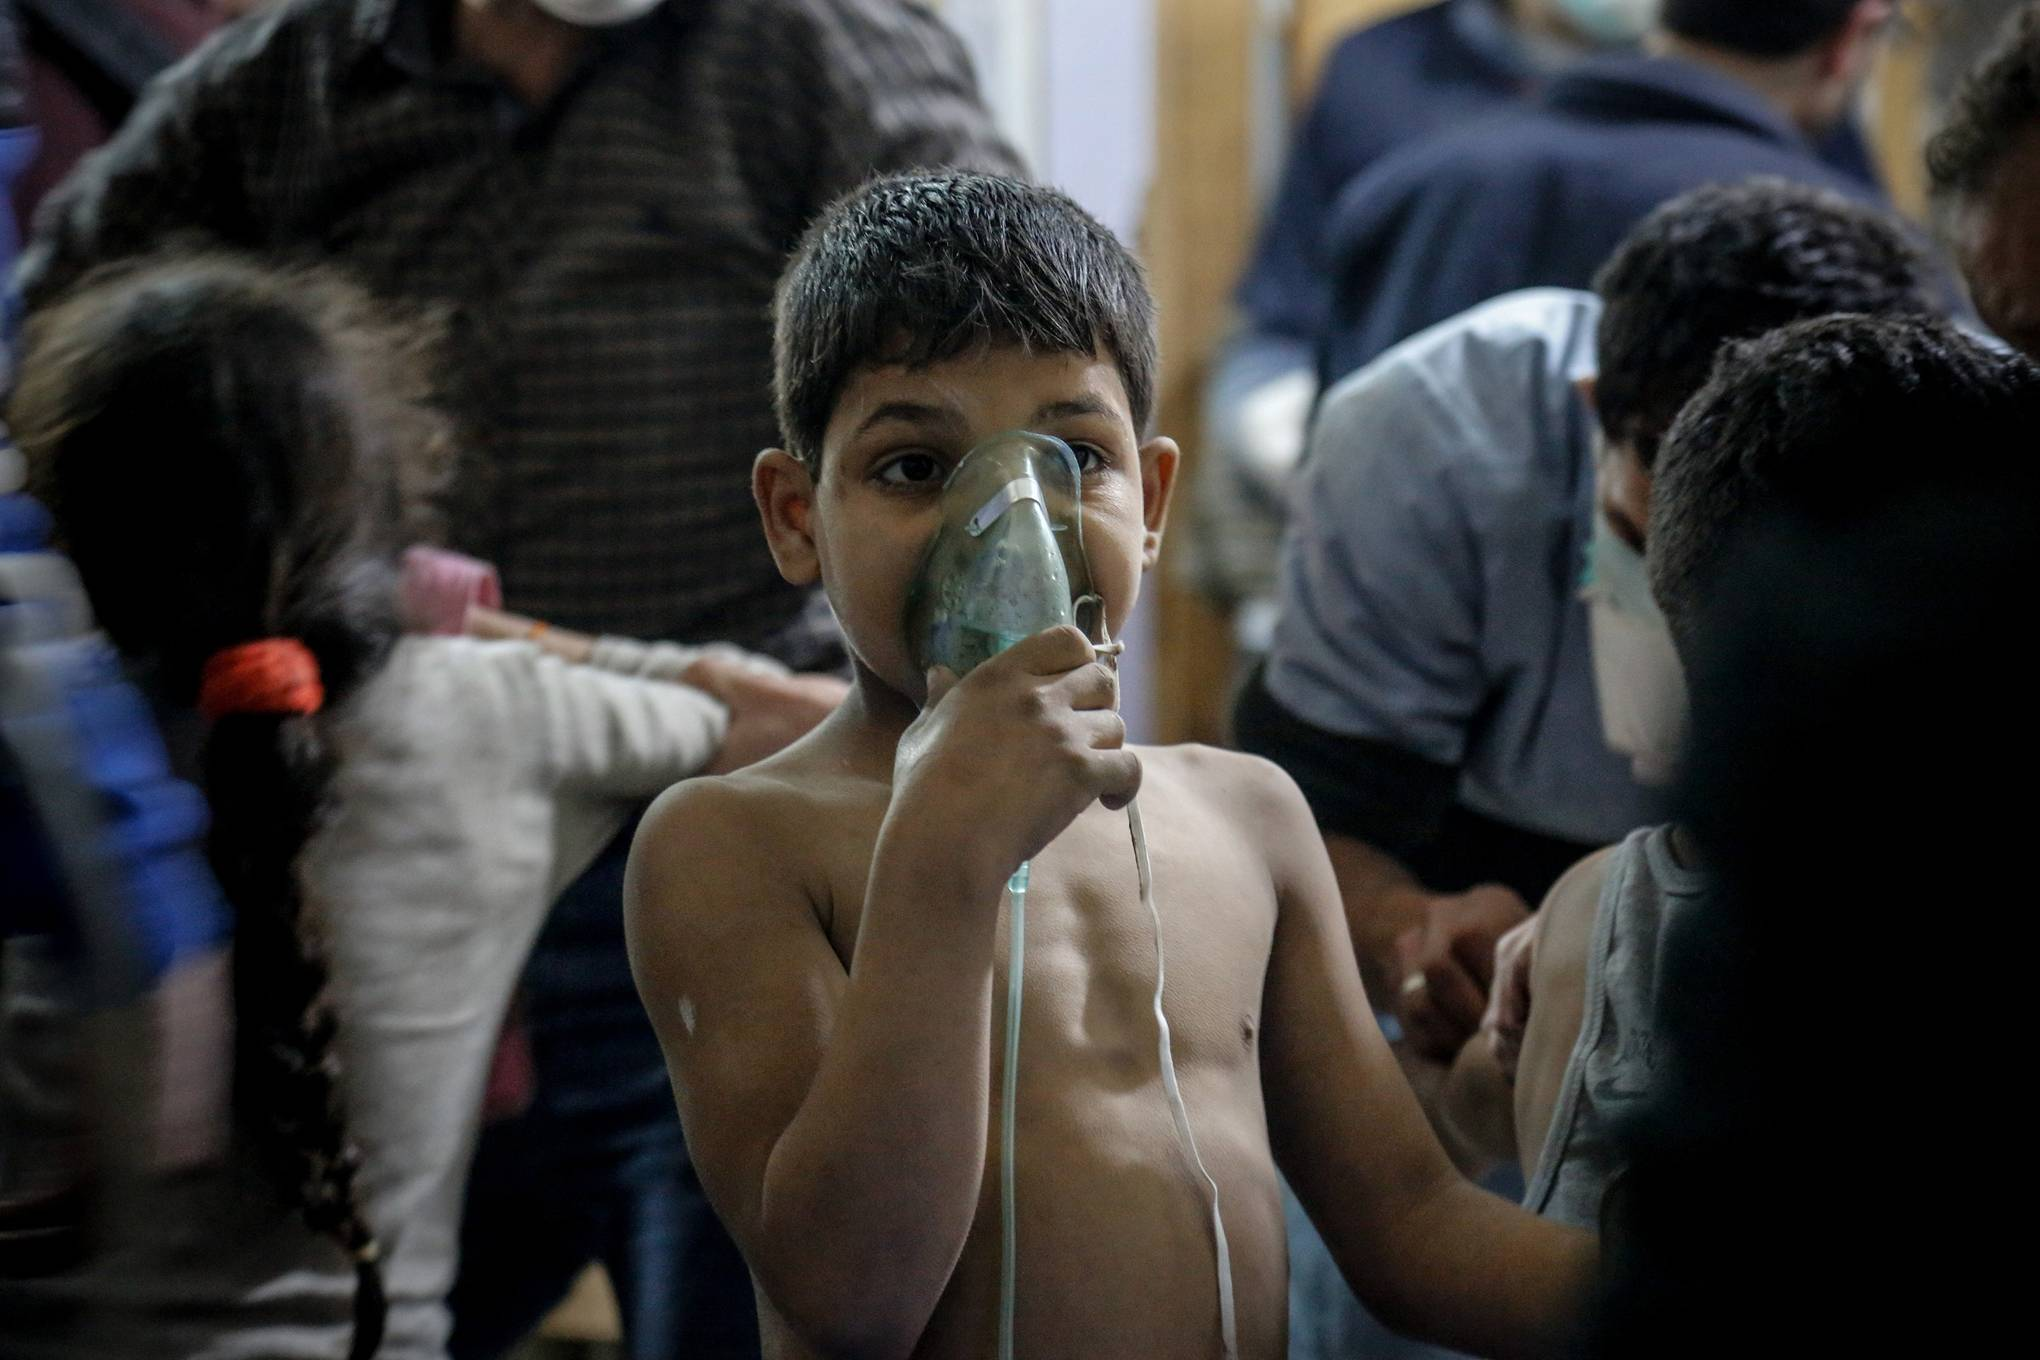 YouTube keeps deleting evidence of Syrian chemical weapon attacks